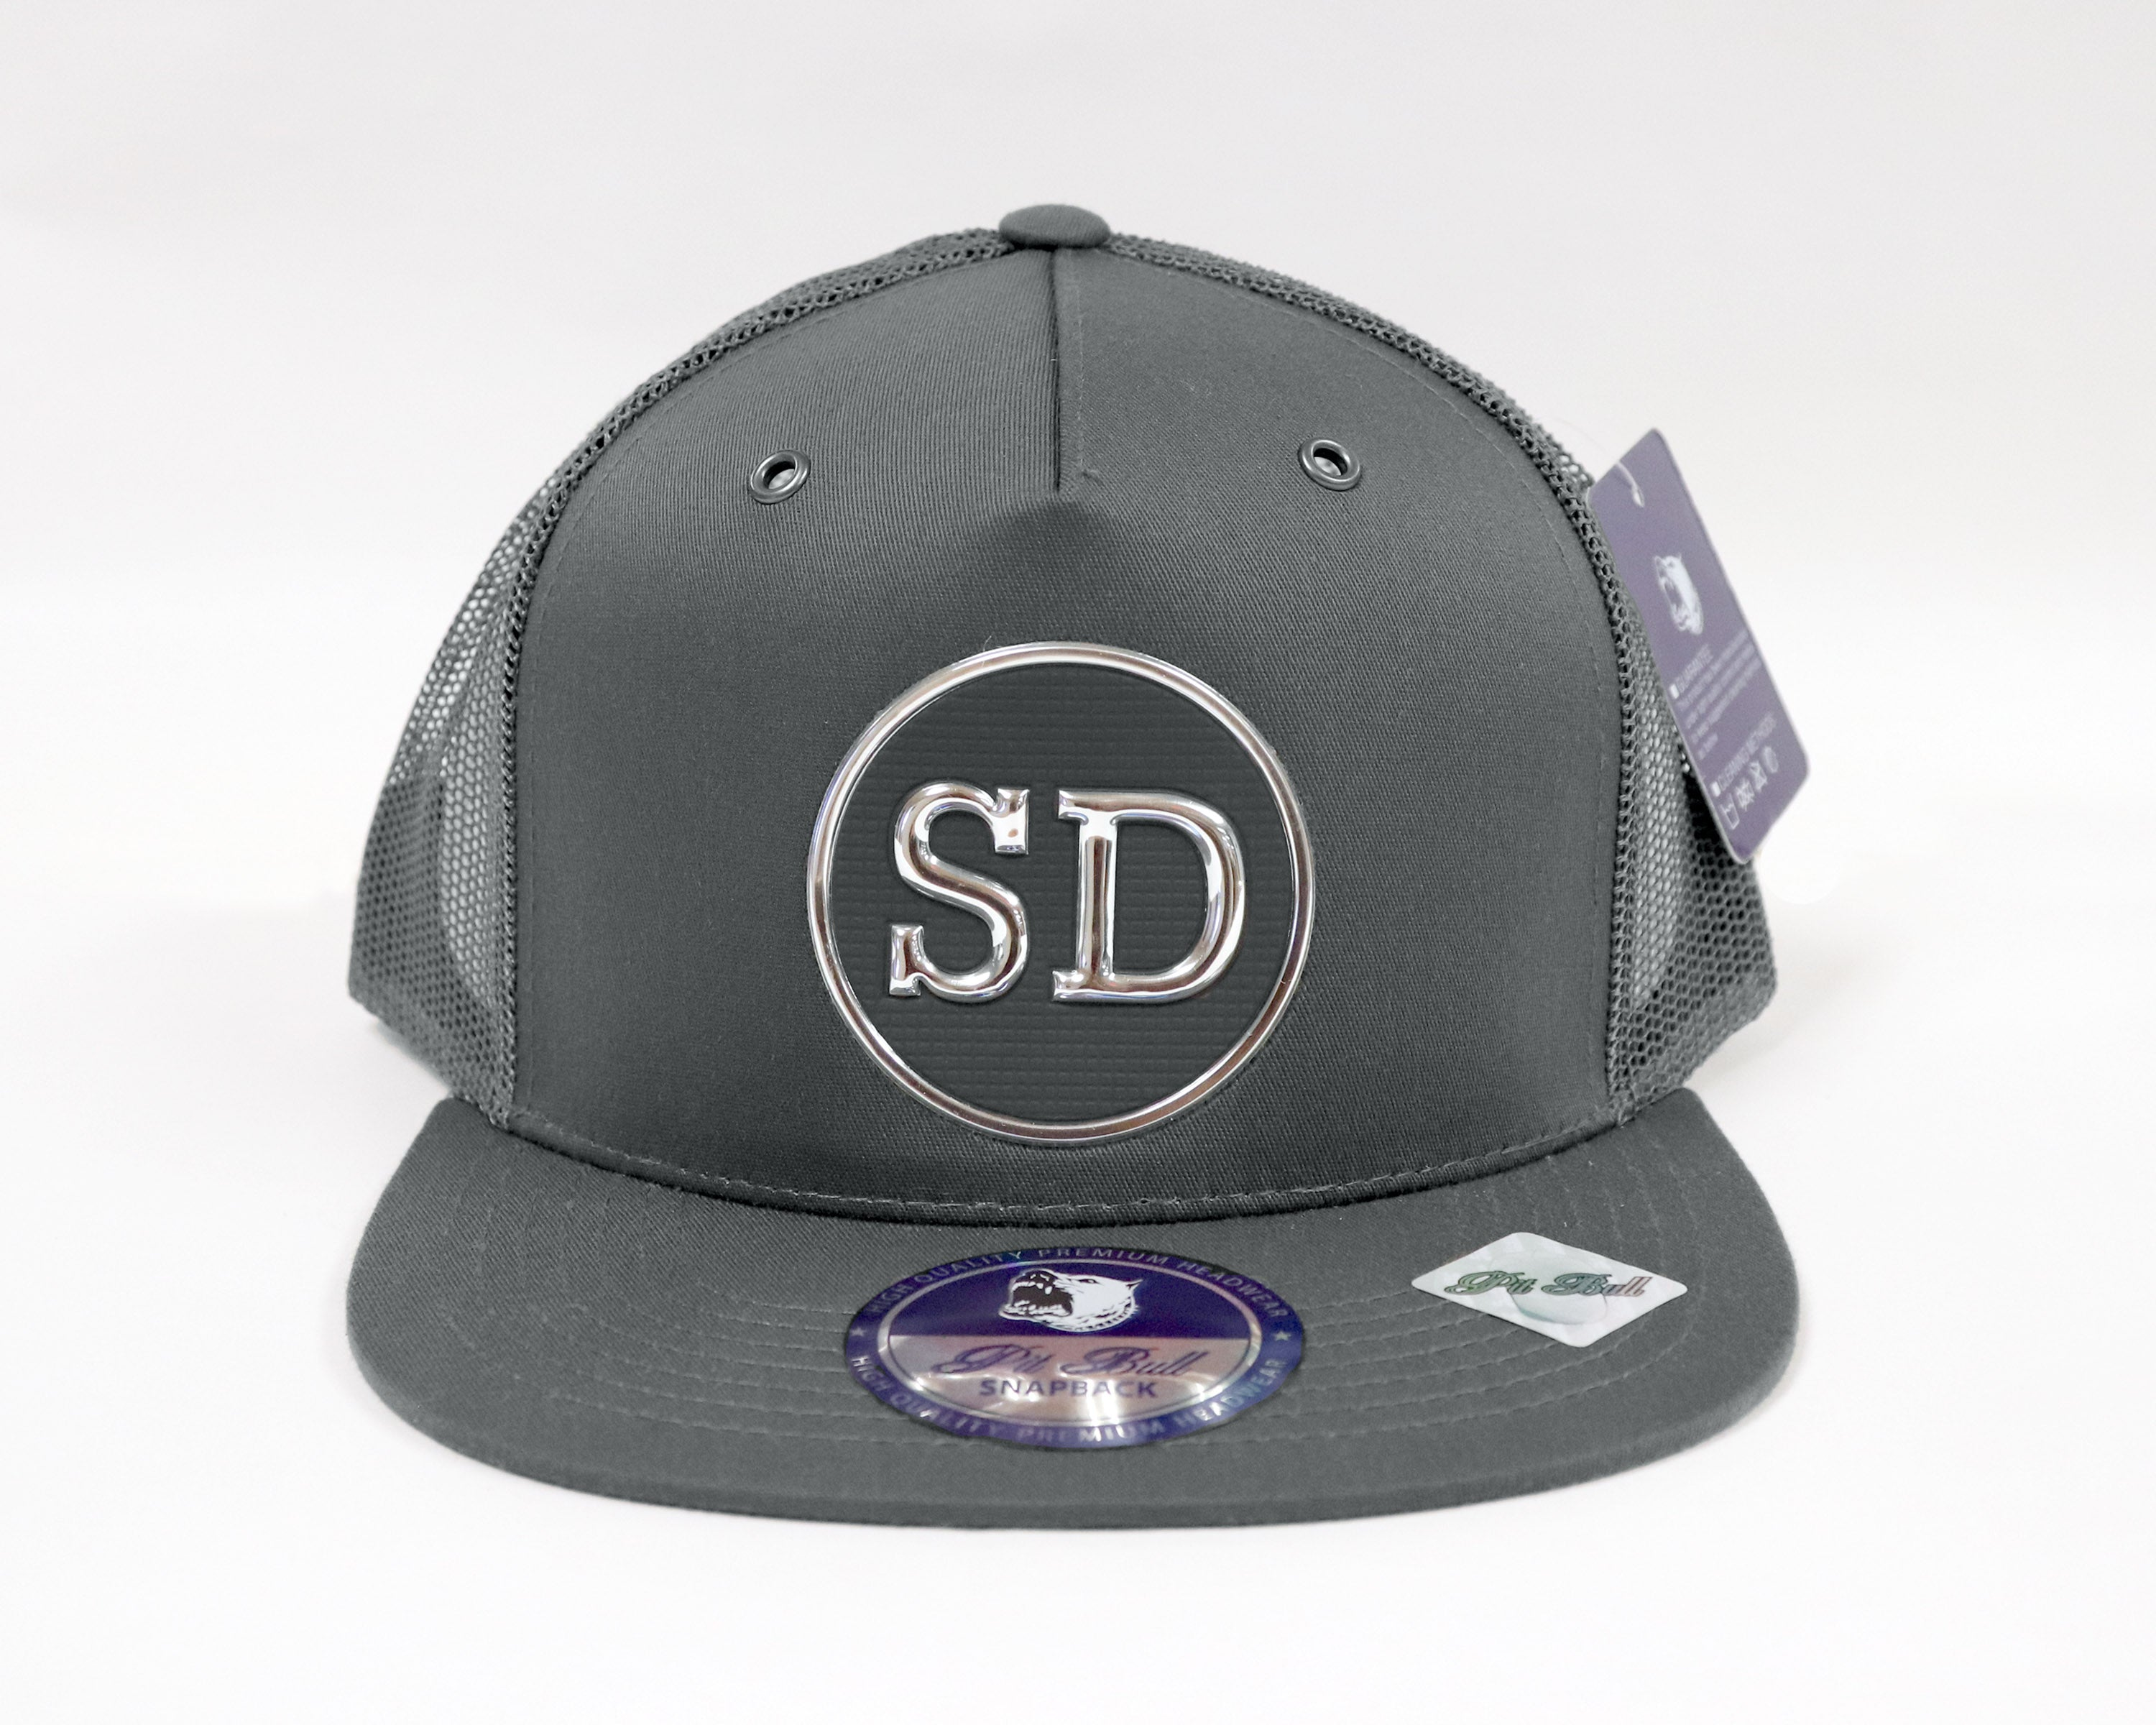 SD H.F. Circle Patch Snapback